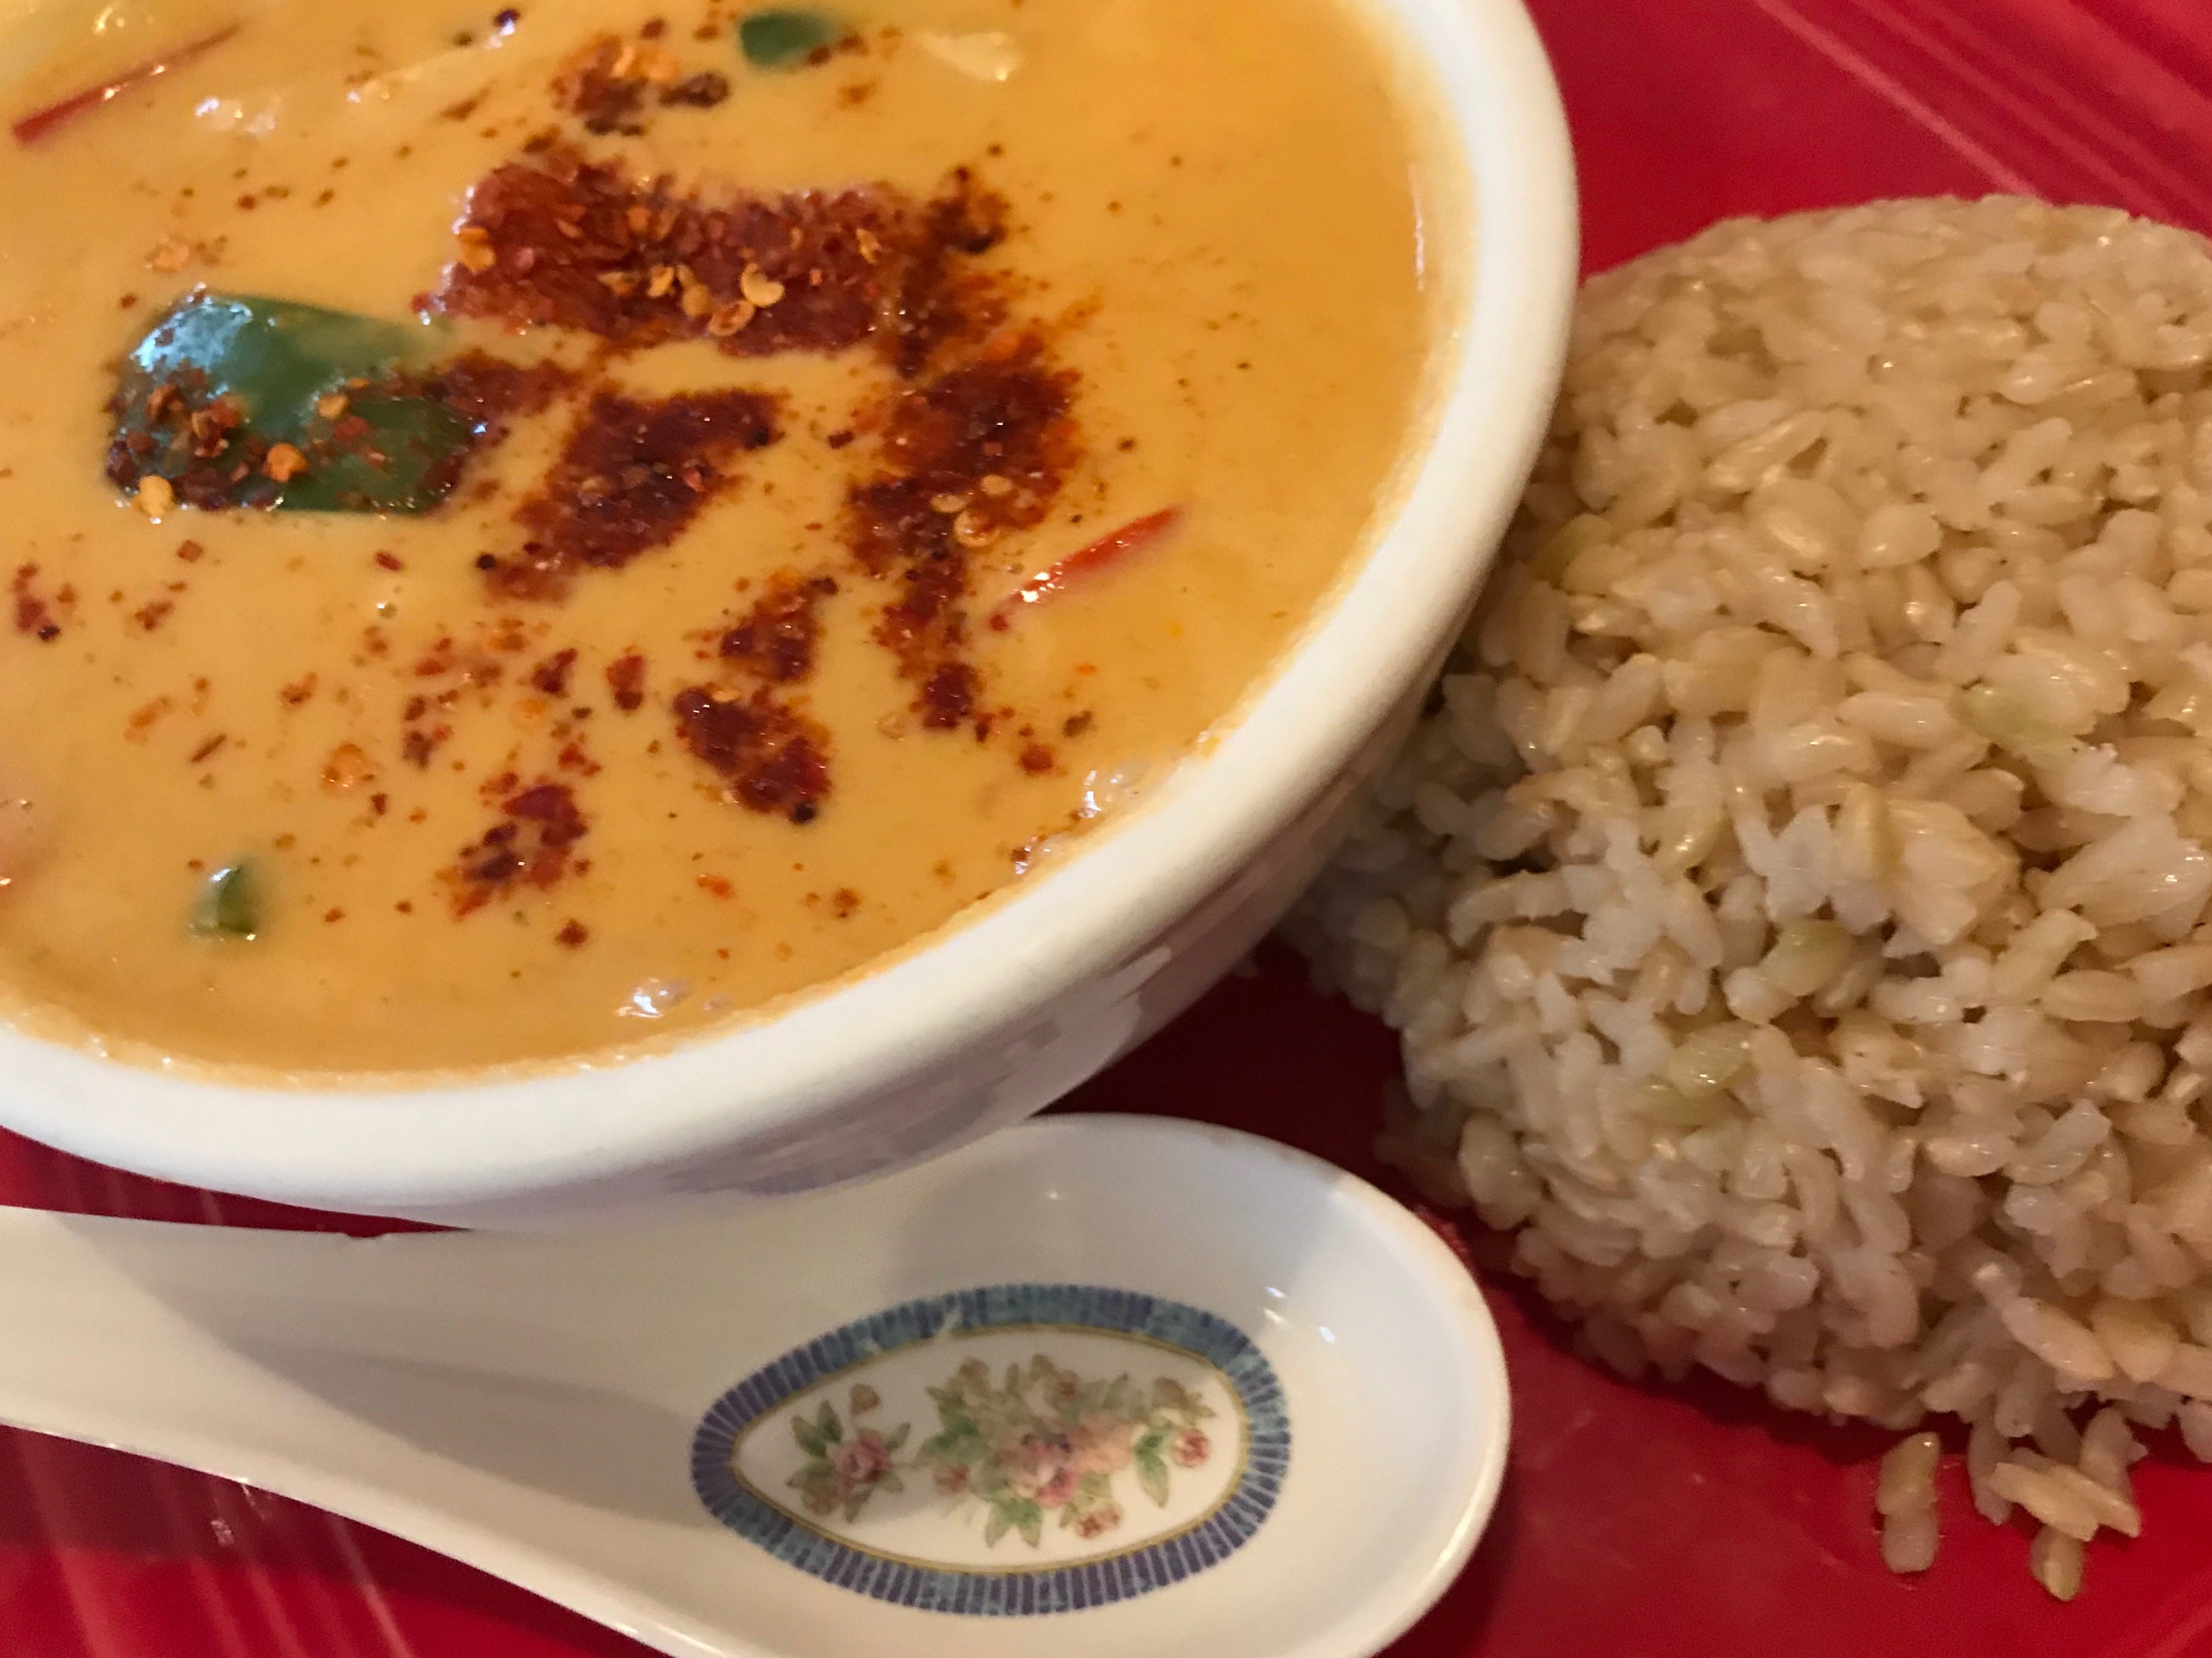 A lunch portion of pumpkin curry and brown rice at  Zuzap Thai Cuisine in Clive.